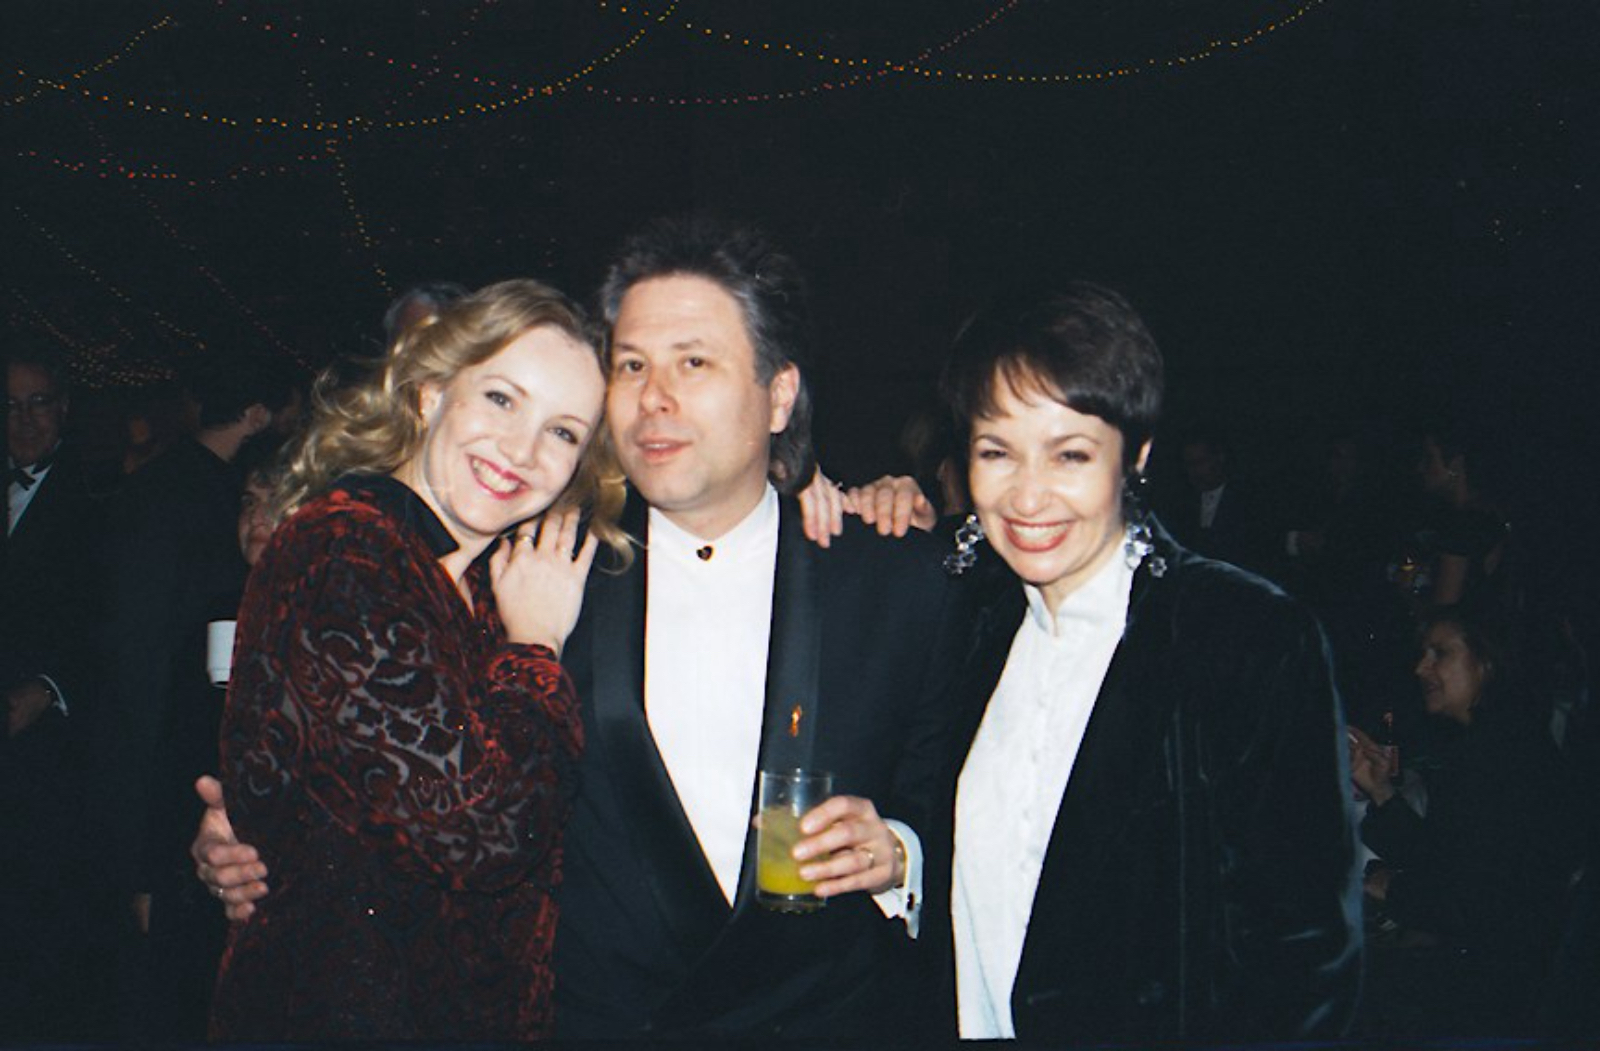 Susan Stroman, Alan Menken, and Lynn Ahrens dressed up and embracing on the opening night of A Christmas Carol.